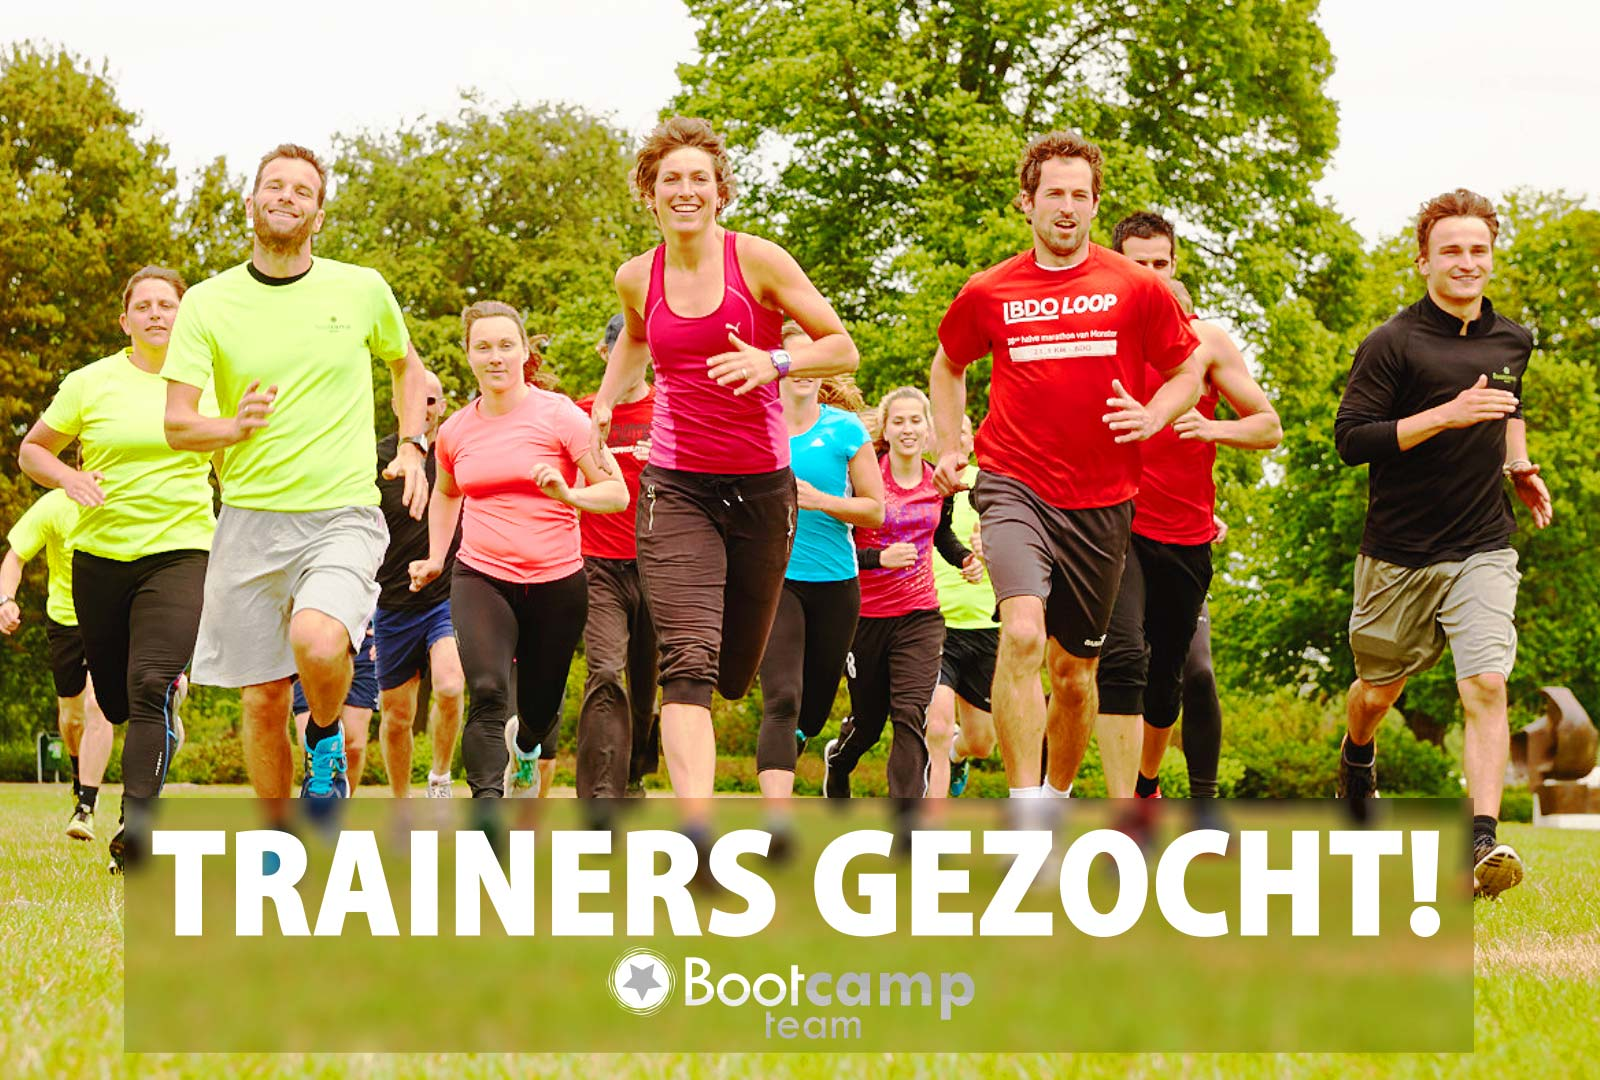 Bootcamp Team zoekt trainers!